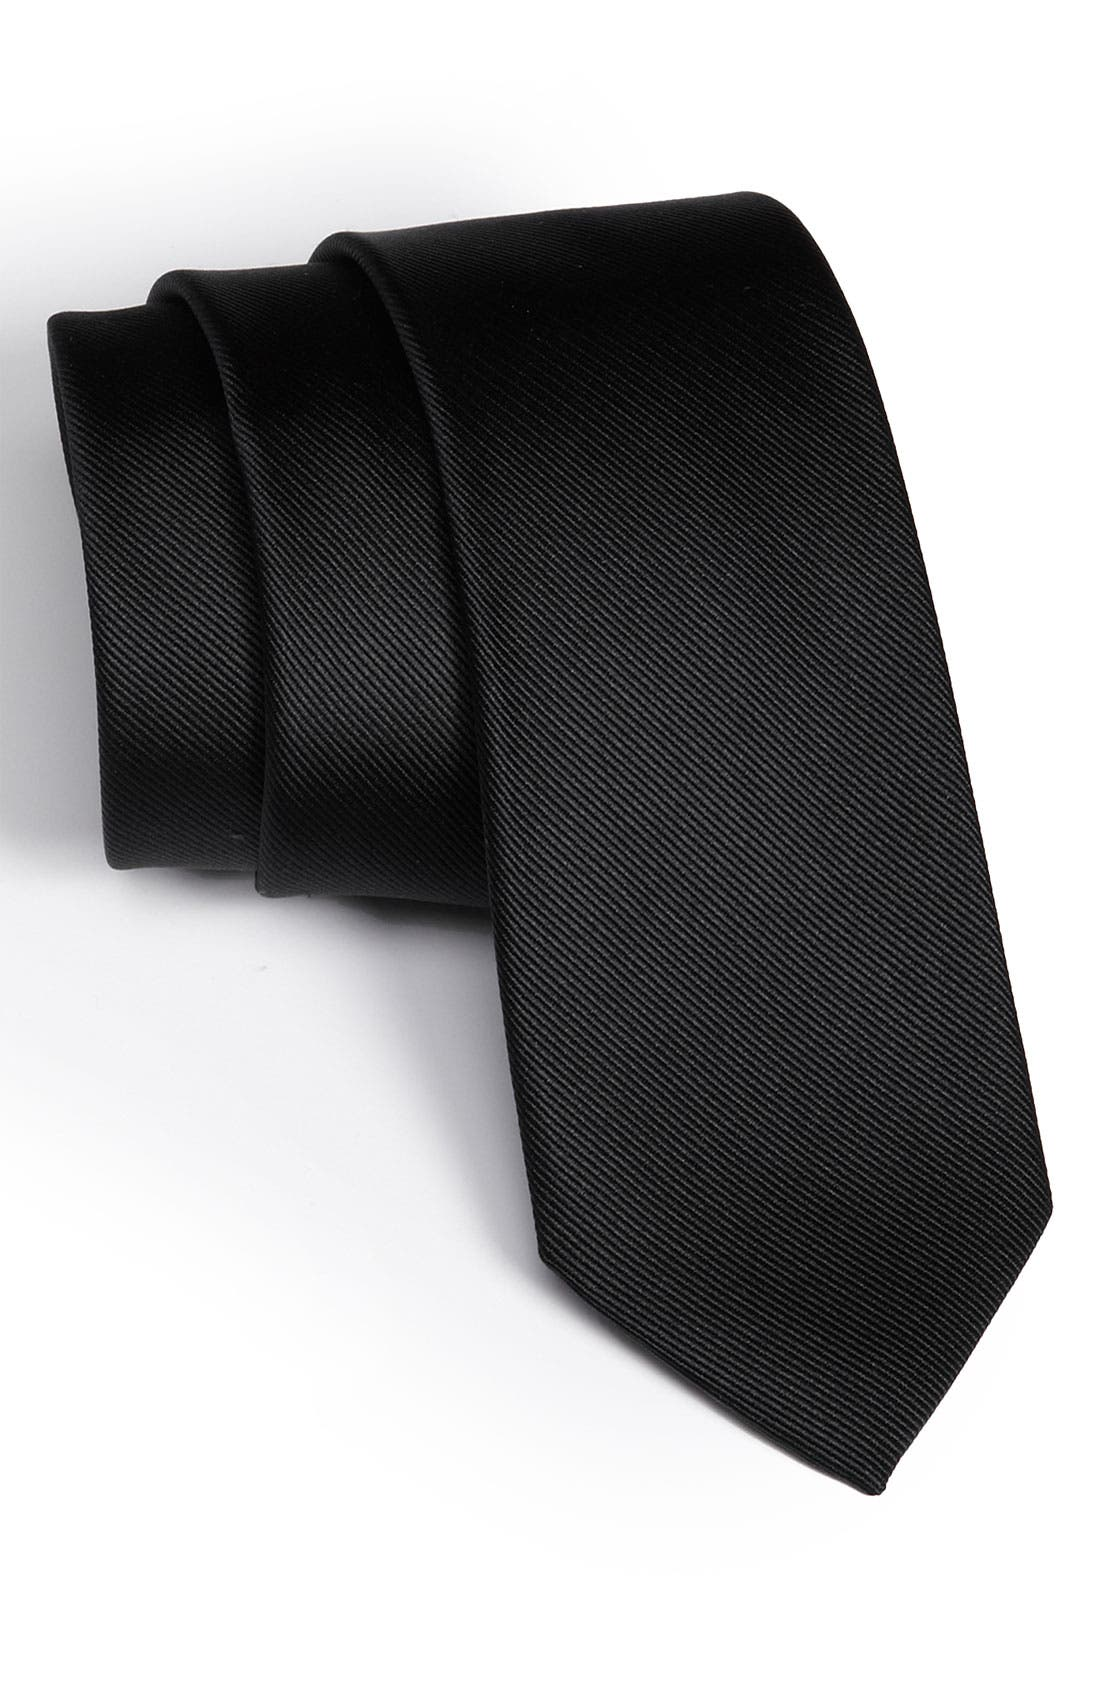 Main Image - Public Opinion Solid Silk Tie